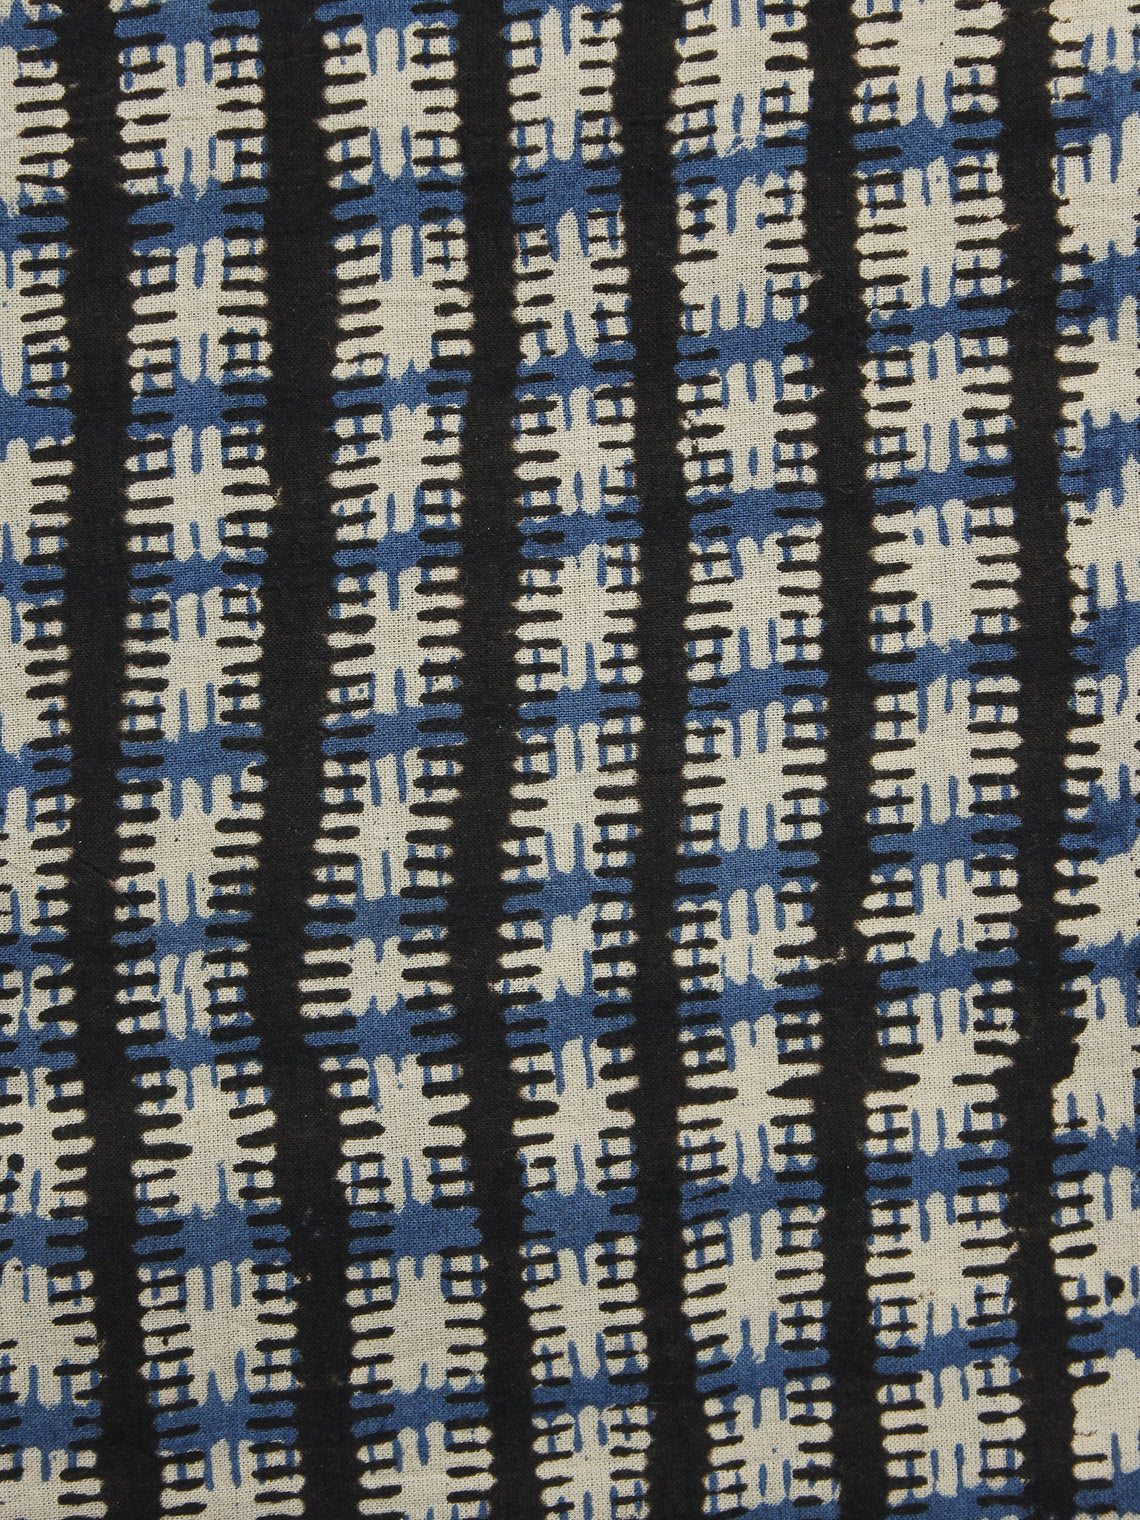 Indigo Black Ivory Hand Block Printed Cotton Fabric Per Meter - F001F1082